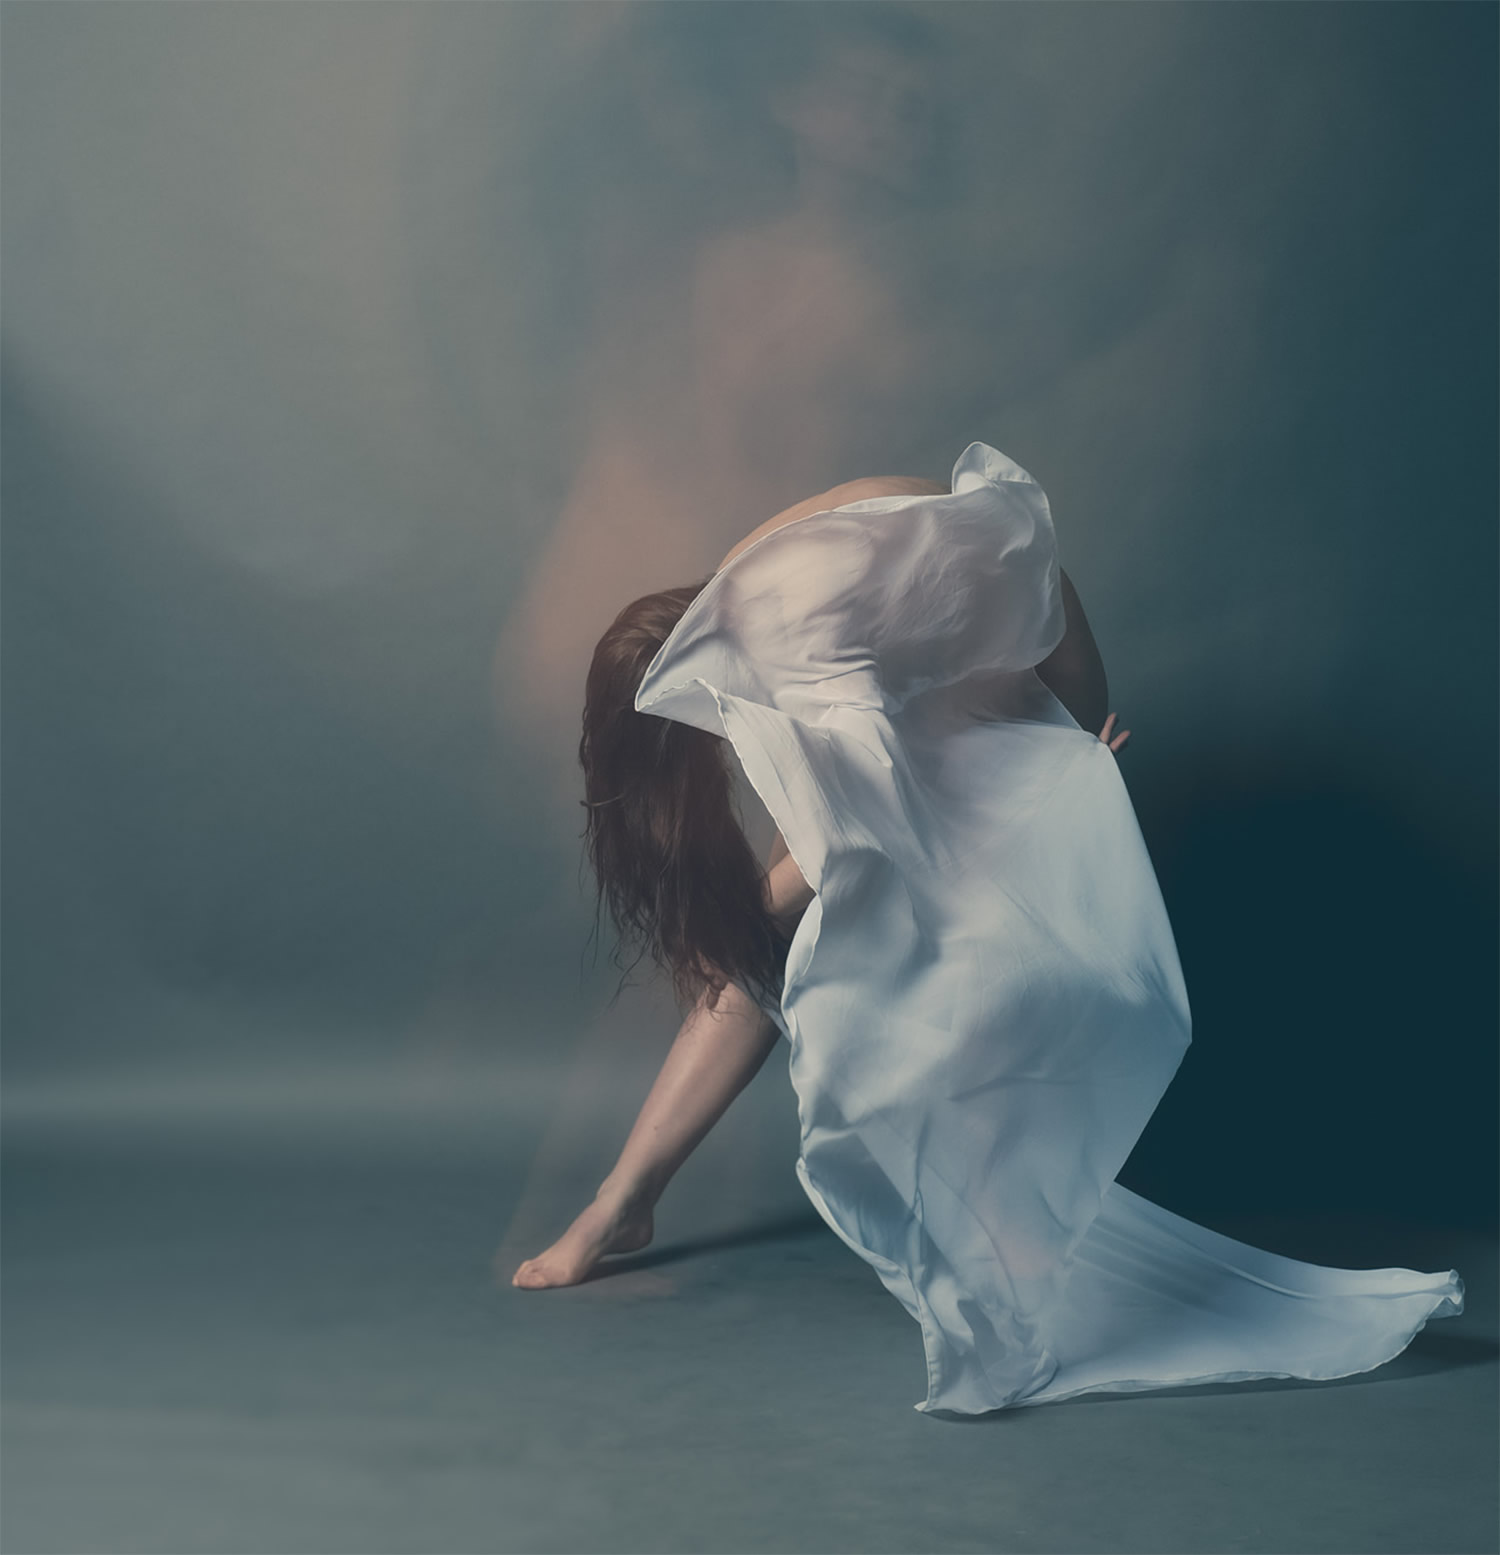 positive motion, white sheets and dancing, by ange studio